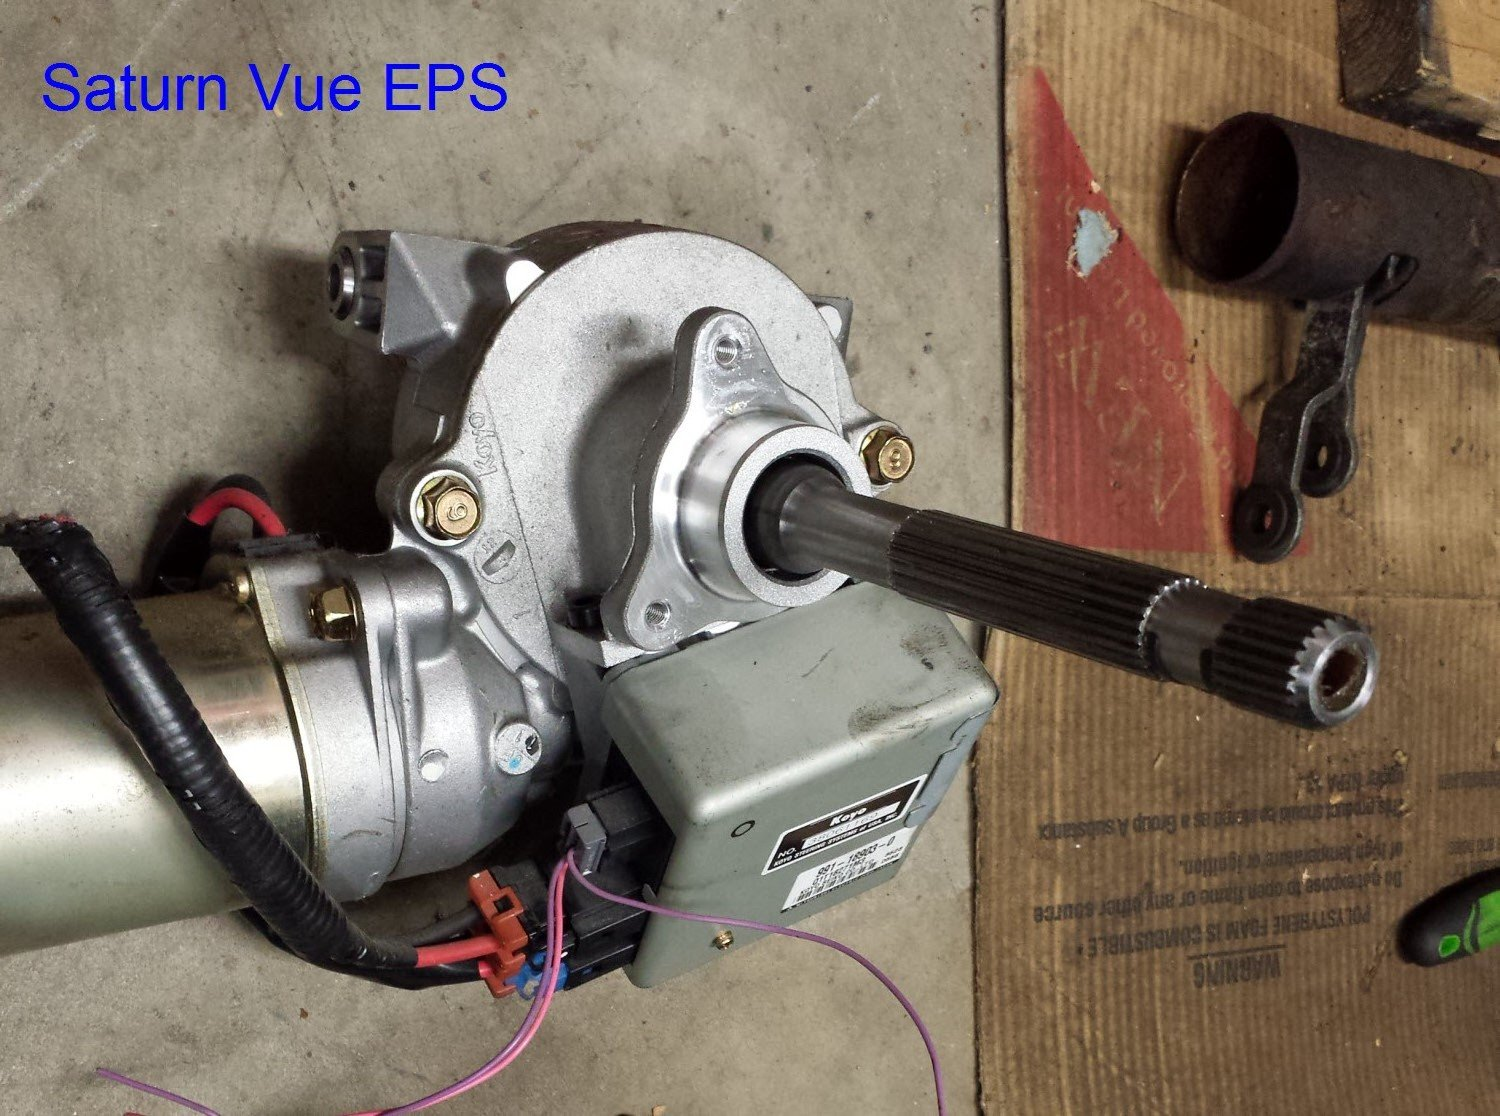 35 Electric Power Steering With Fail-safe - No Ebay Module And No Caster Issues